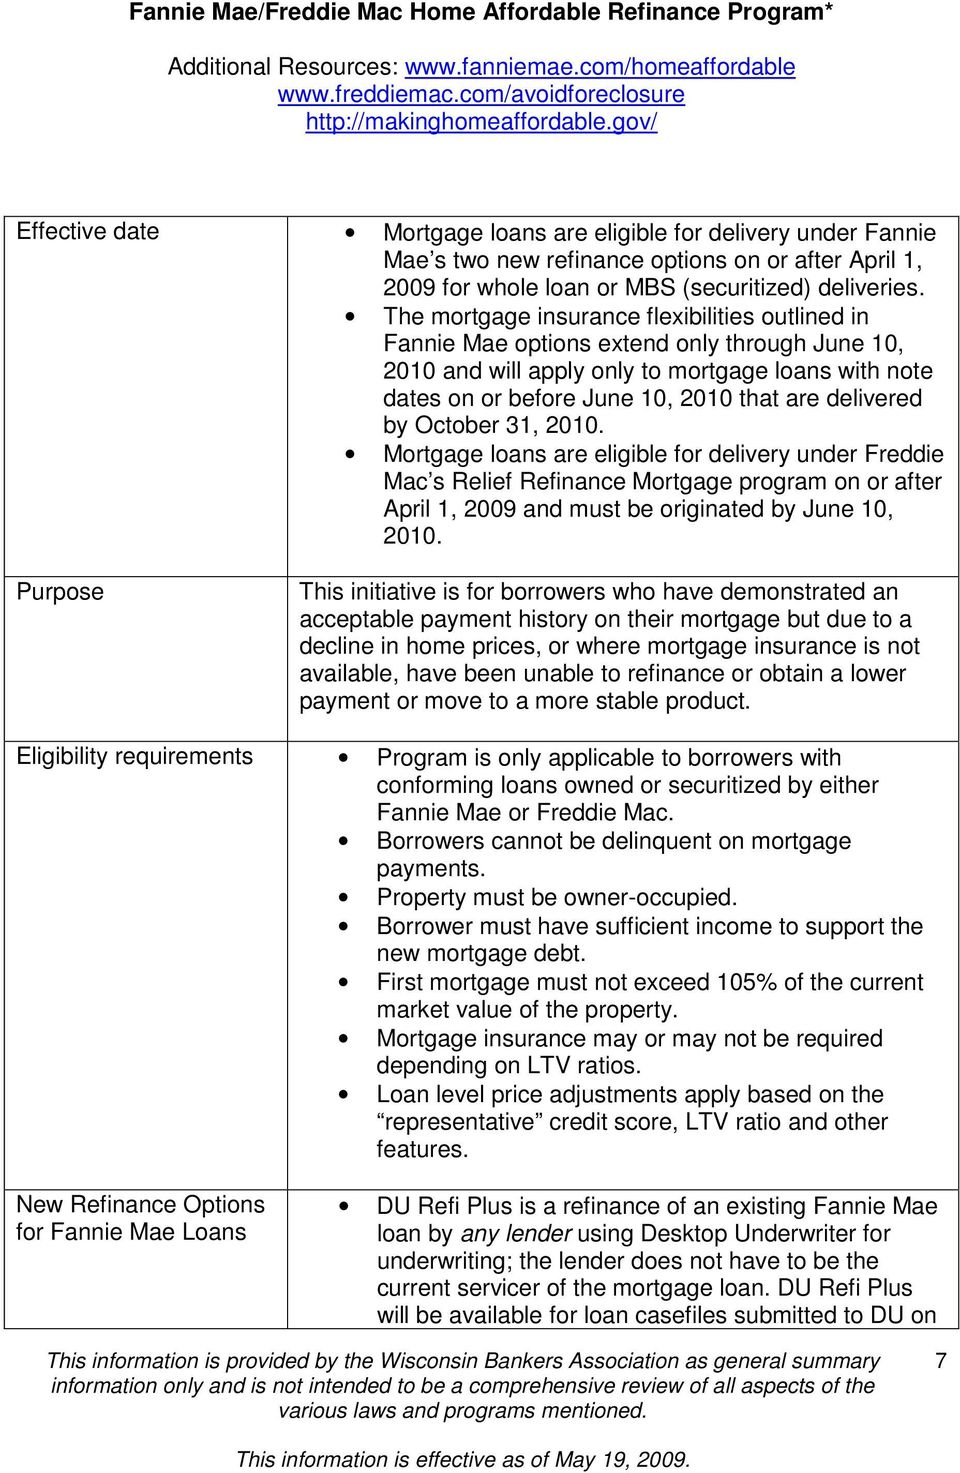 The mortgage insurance flexibilities outlined in Fannie Mae options extend only through June 10, 2010 and will apply only to mortgage loans with note dates on or before June 10, 2010 that are